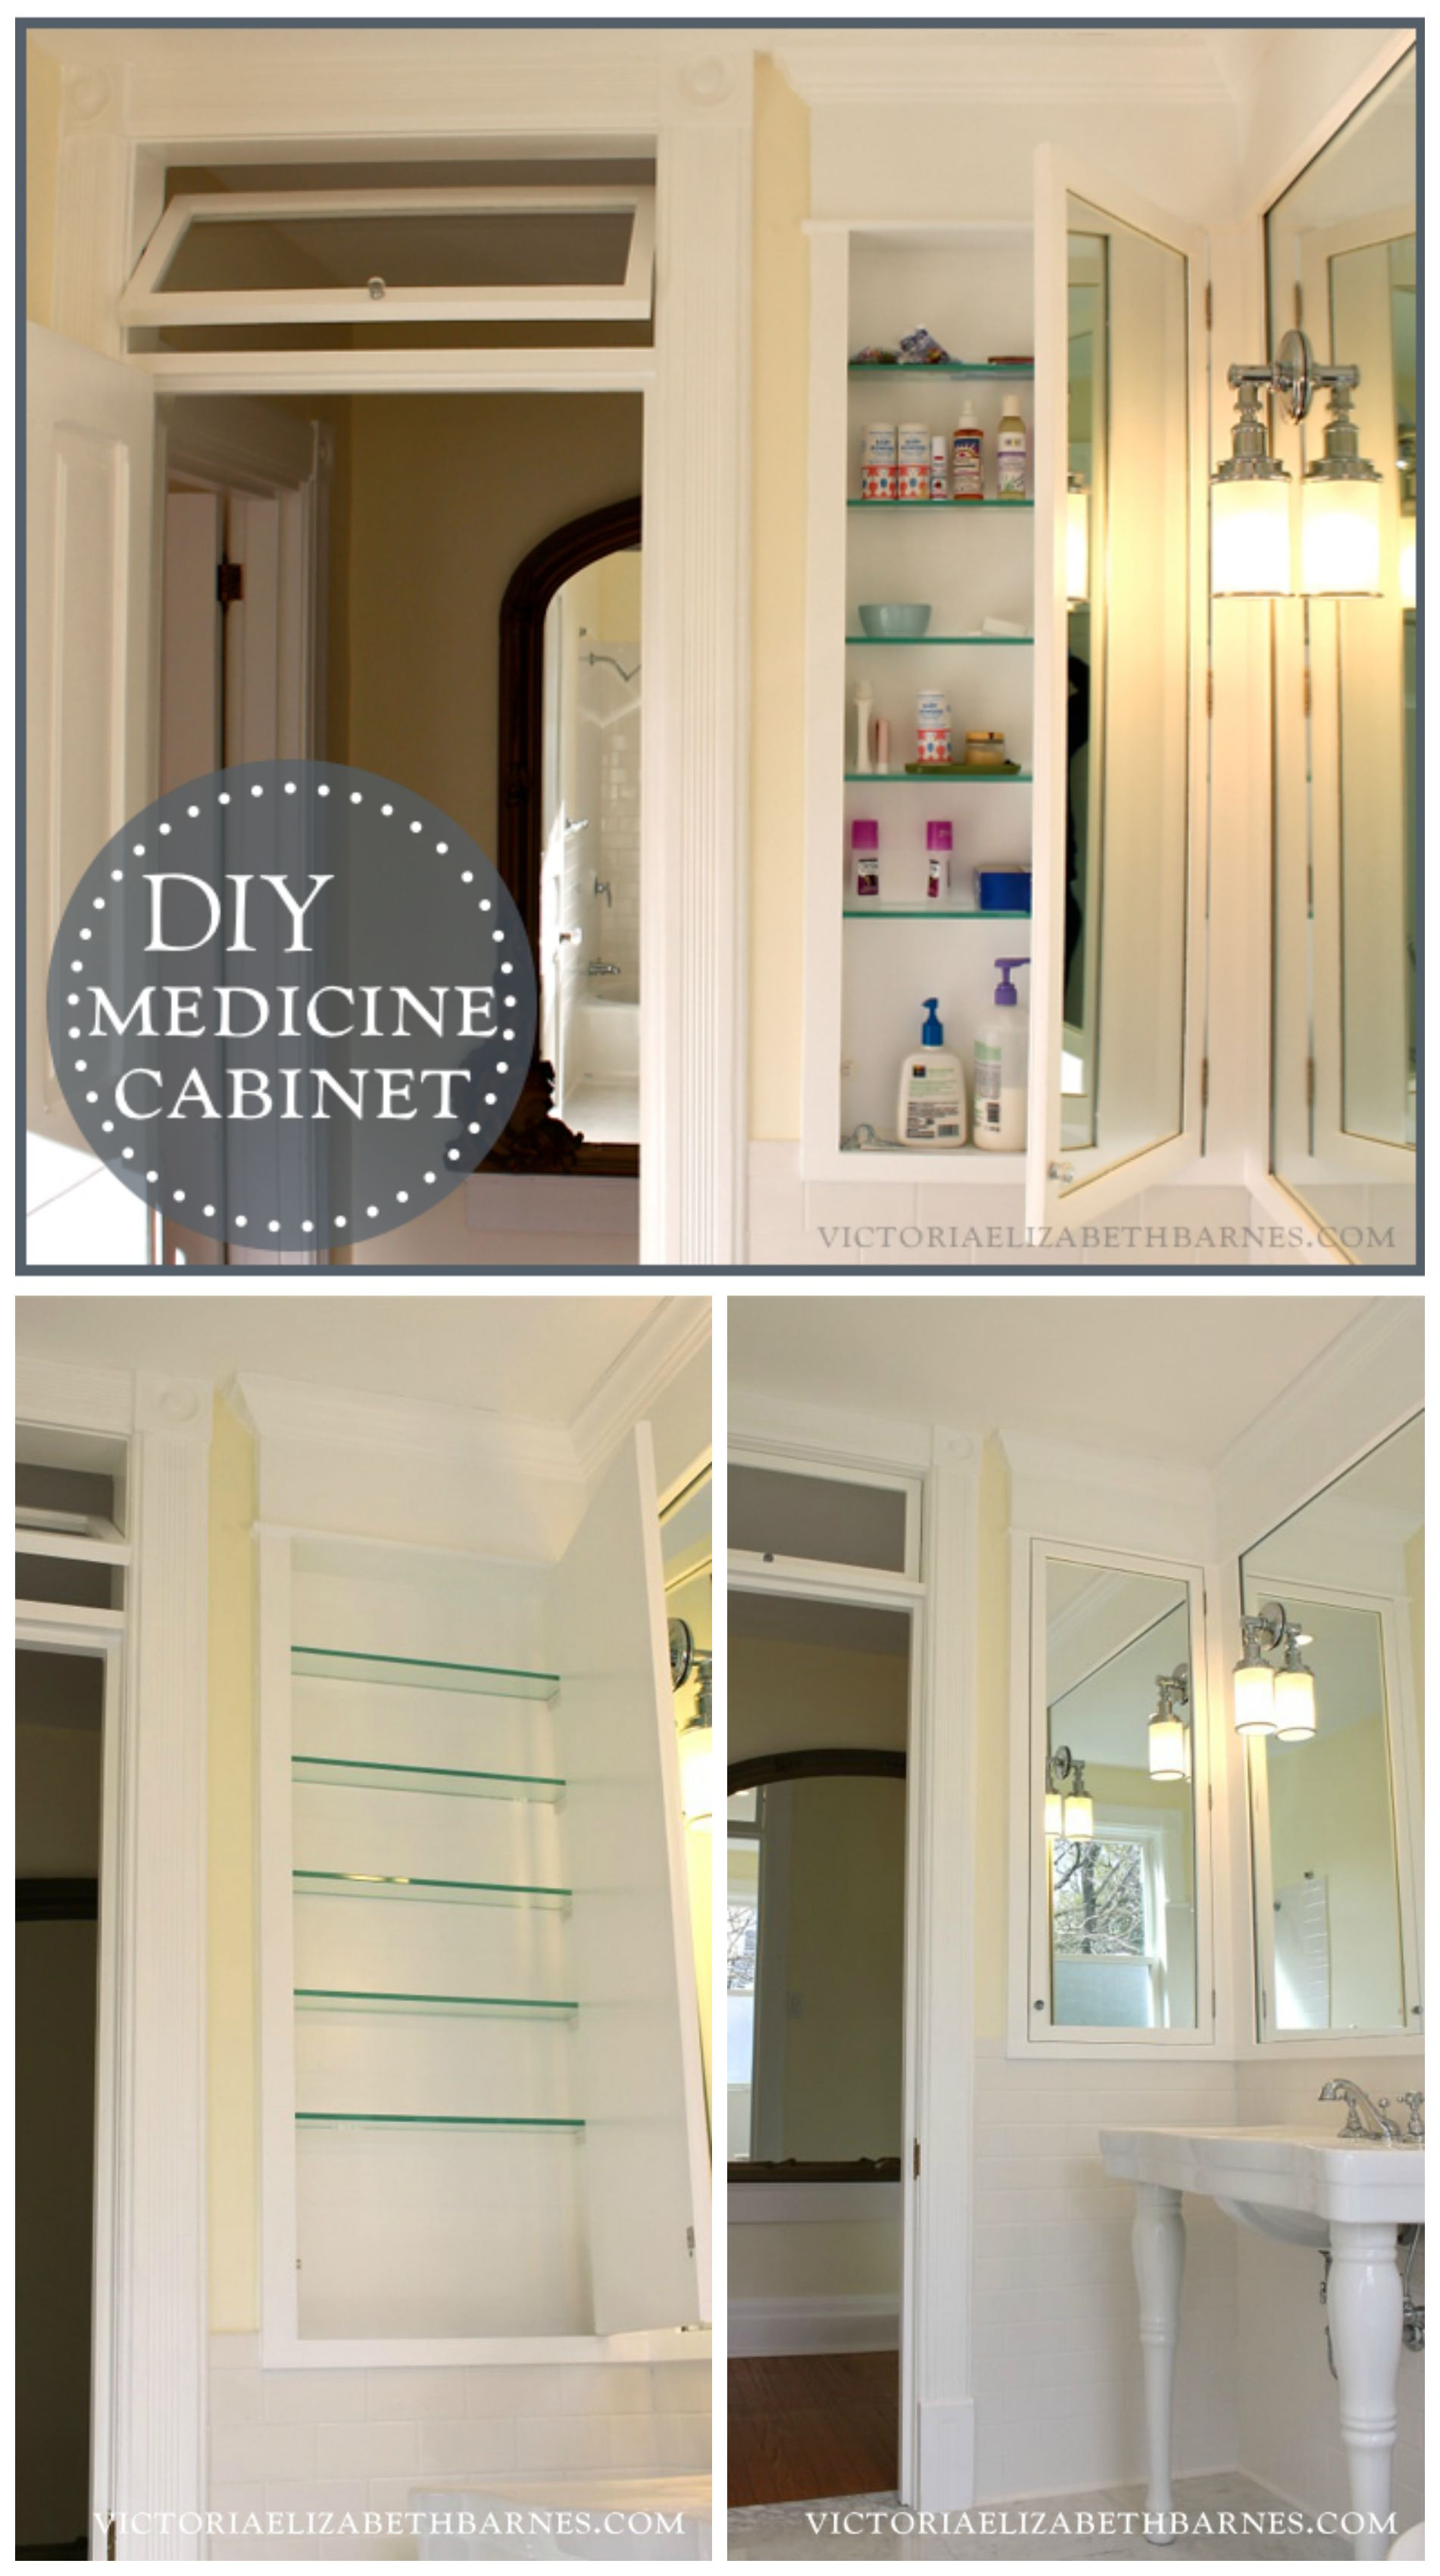 We designed and built an extra-tall, mirrored storage and medicine cabinet for our old-house bathroom remodel… it's a GREAT way to use the space between wall studs!!